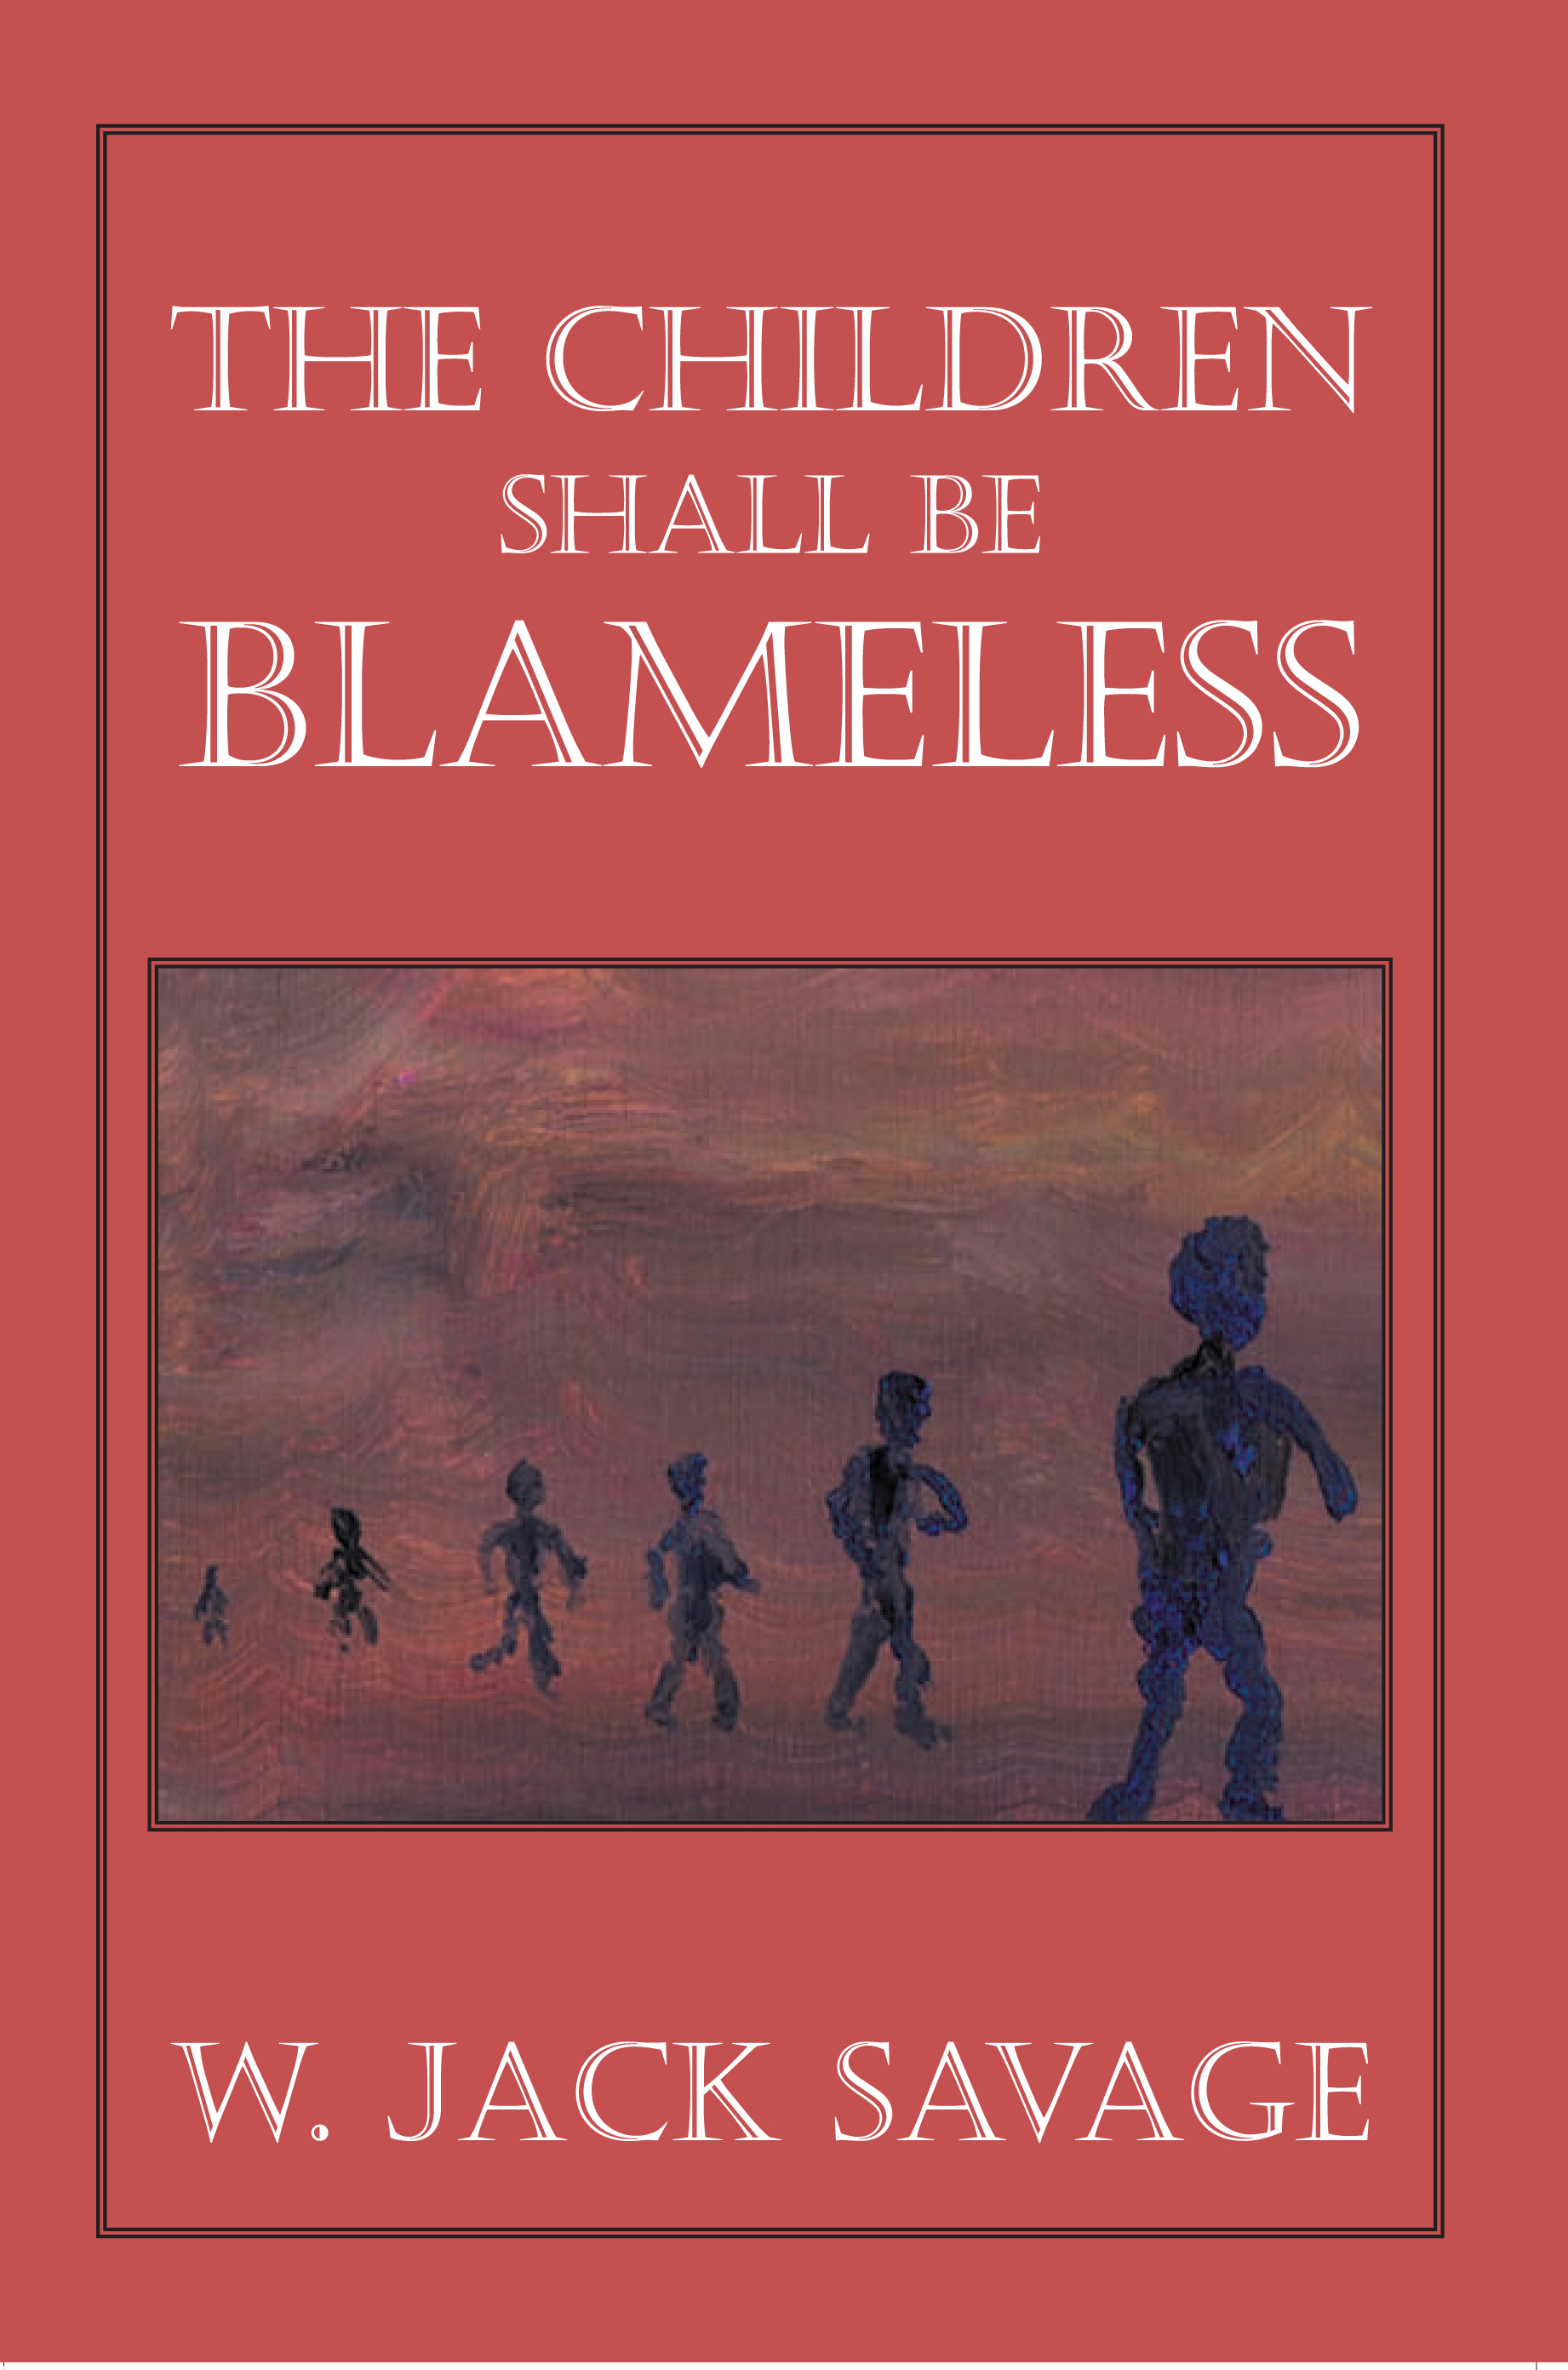 The Children Shall Be Blameless